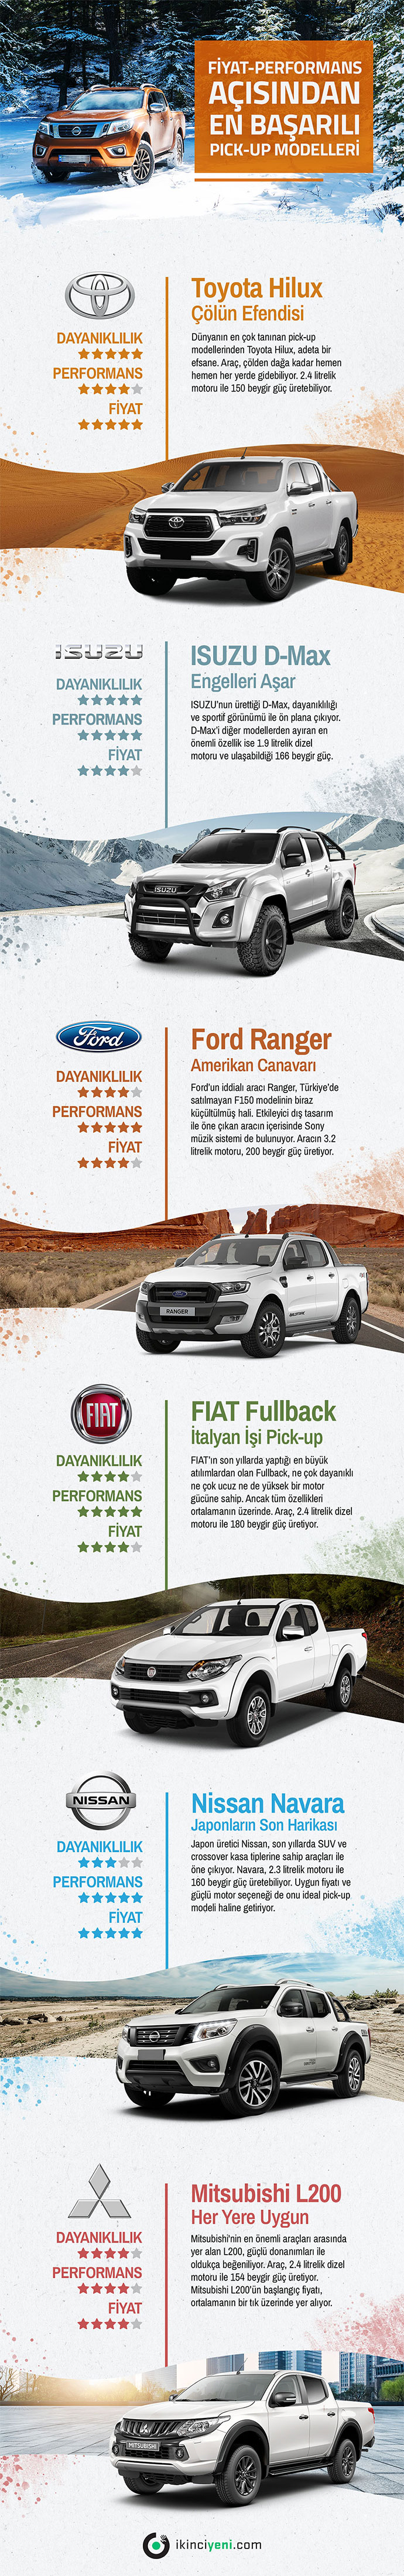 fiyat-performans-acisindan-pick-up-modelleri